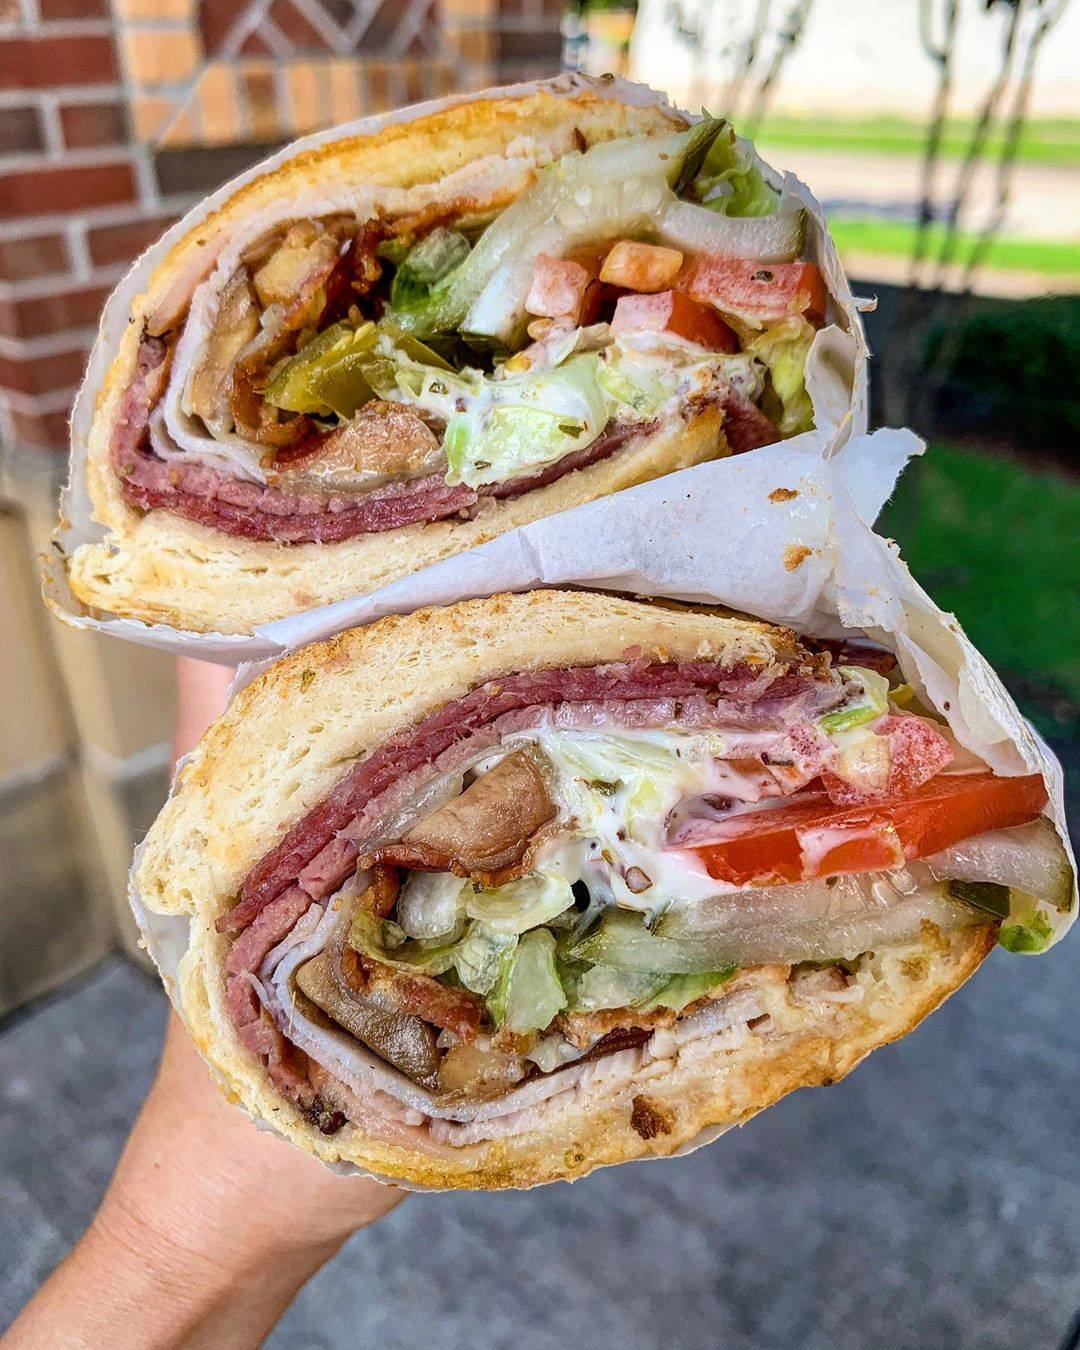 Delcious Sandwich from Potbelly